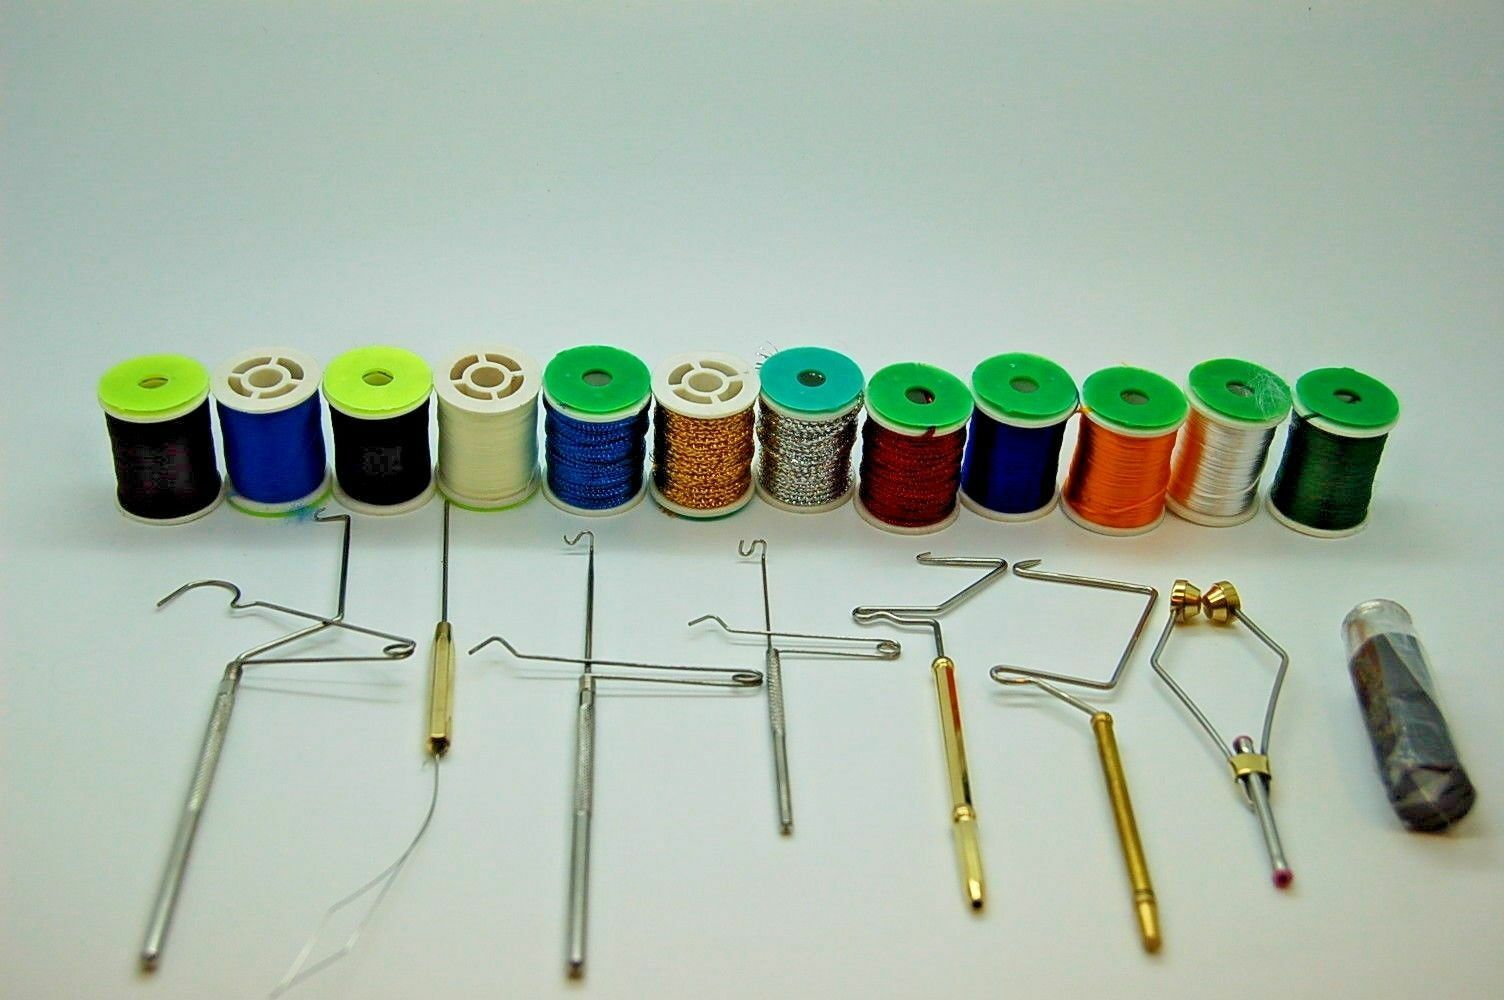 Kit de Herramientas y Materiales para Moscas, Hilo, Tinsel, Floss, Whip Finisher